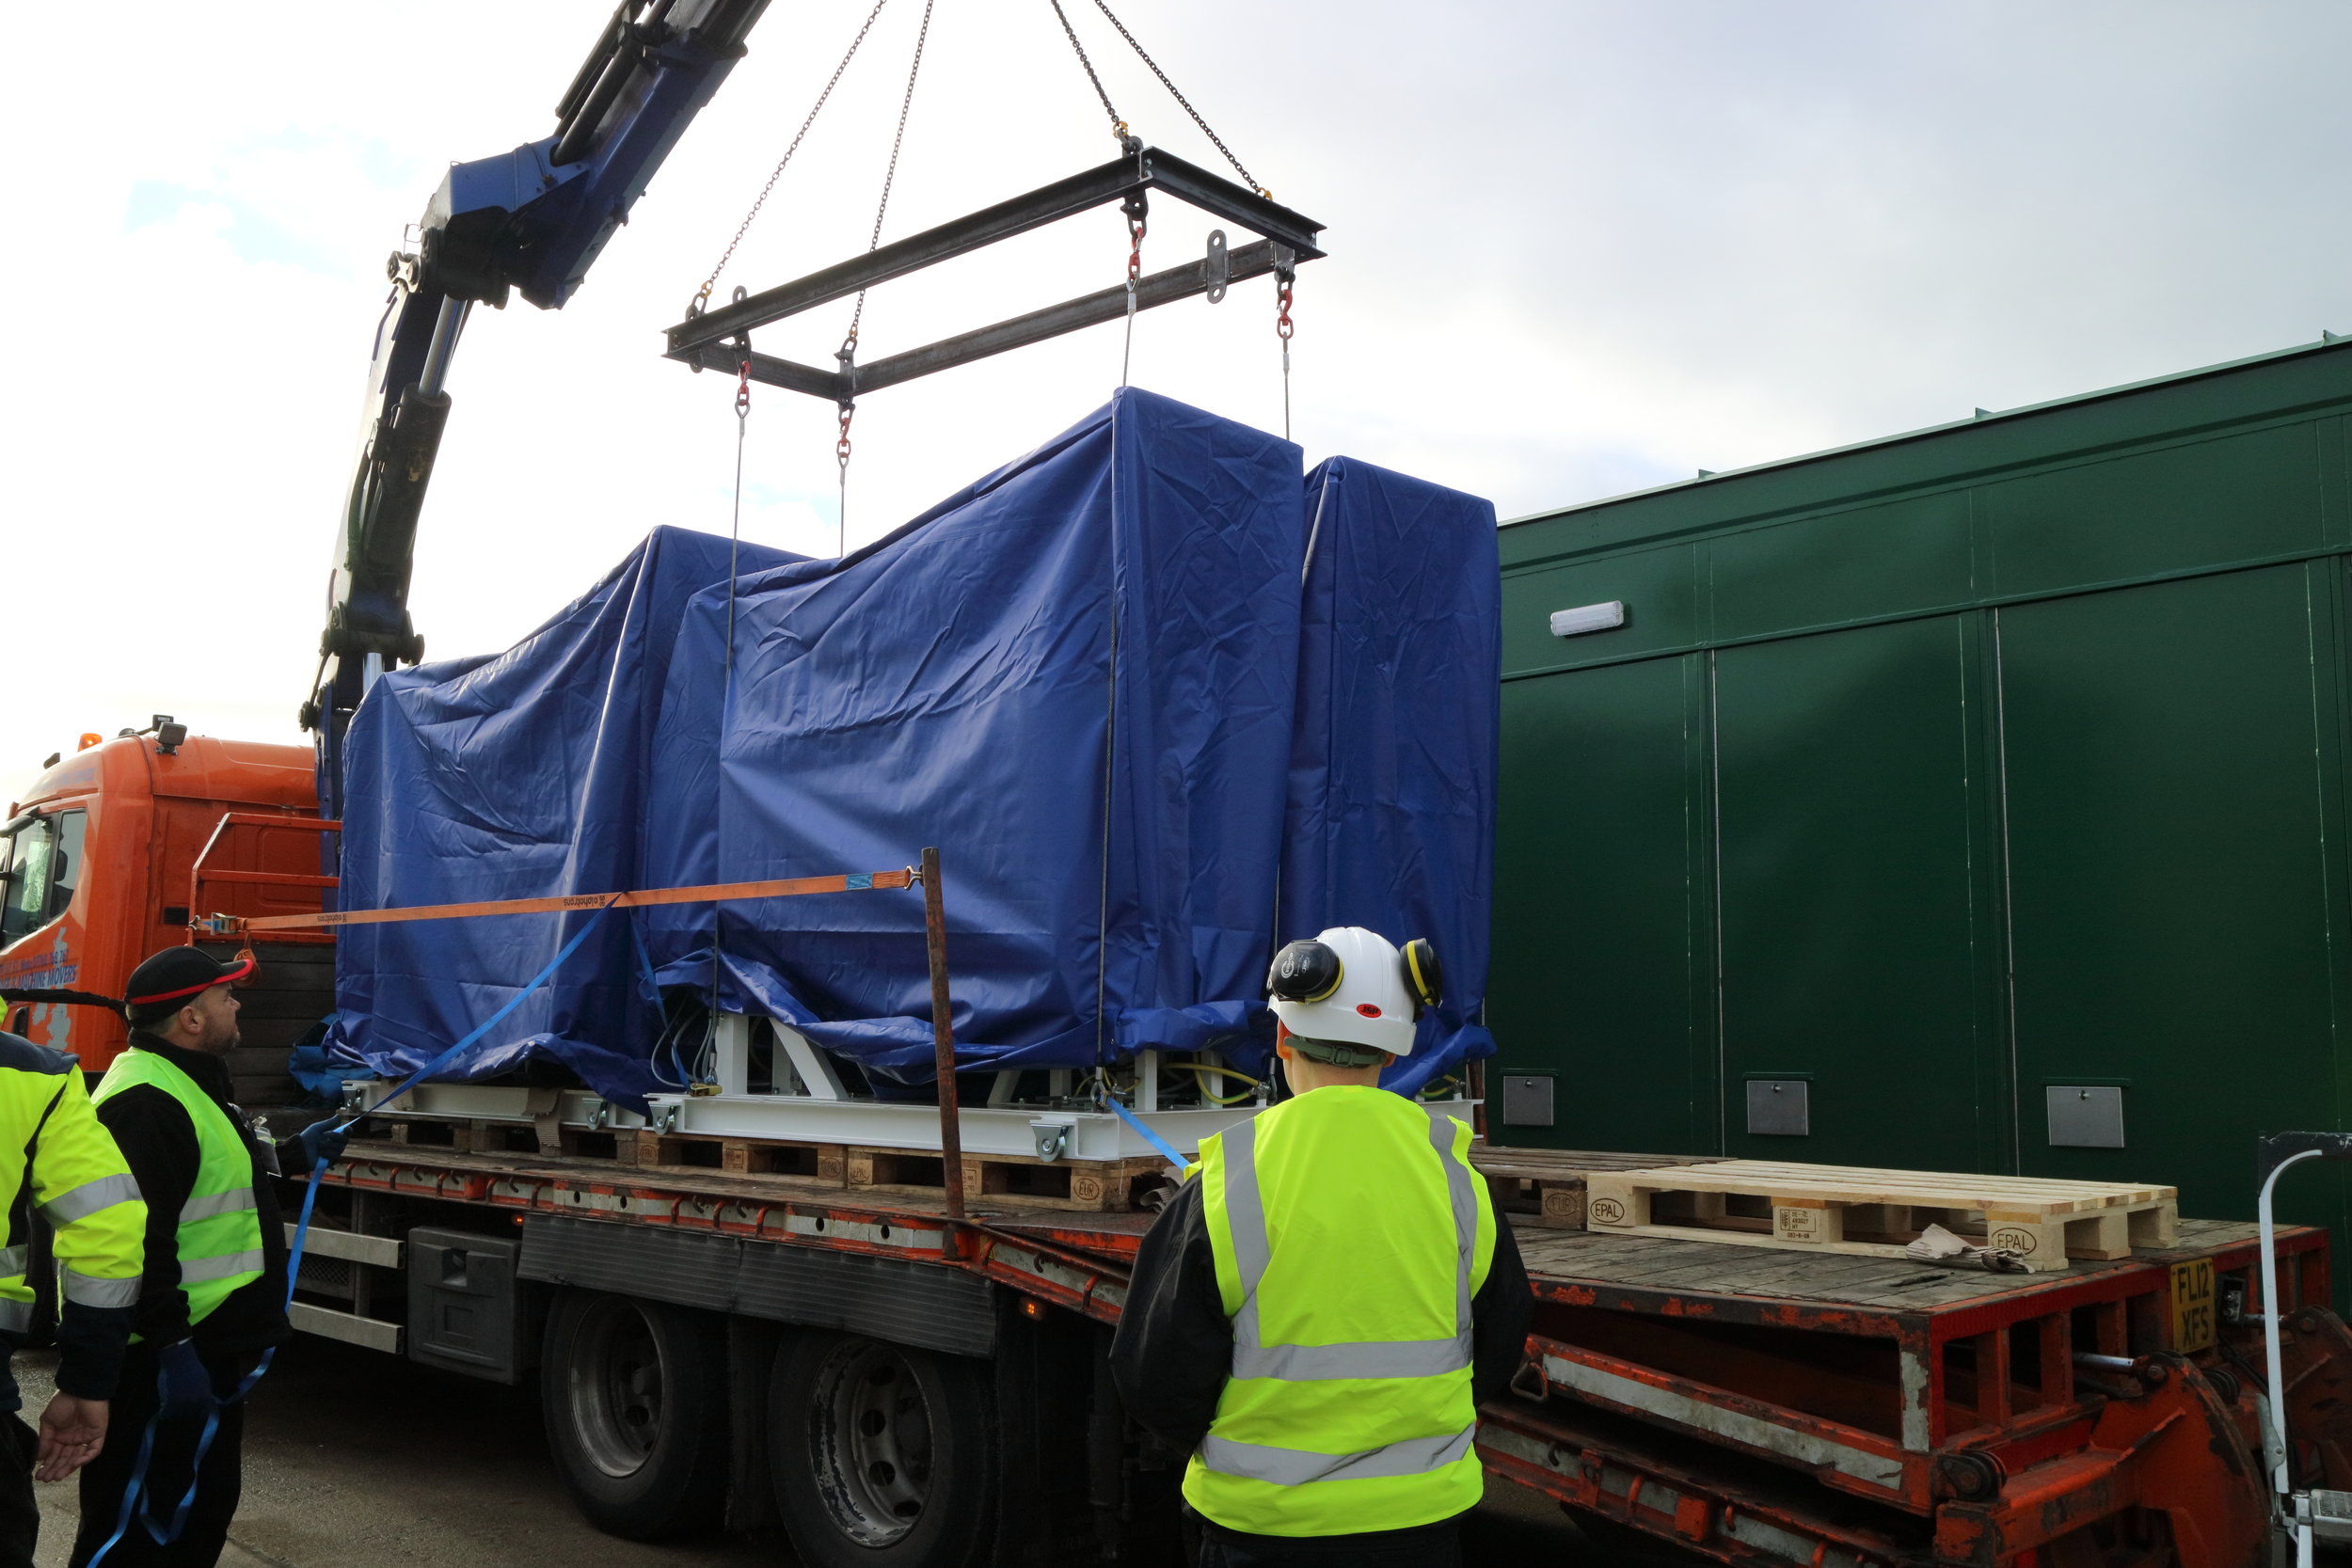 Image 3 - pallet on lorry ready to be lifted in to sub.JPG